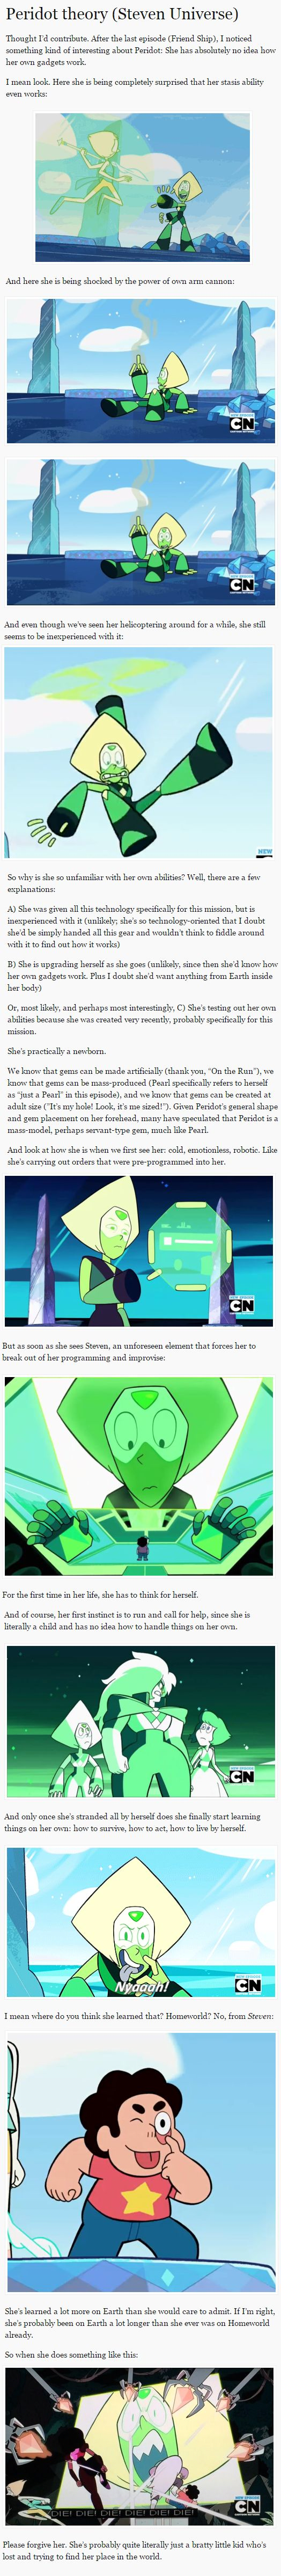 I think Peridot is either a young gem, or has never been in battle or anything like that which would require the use of her weapons.